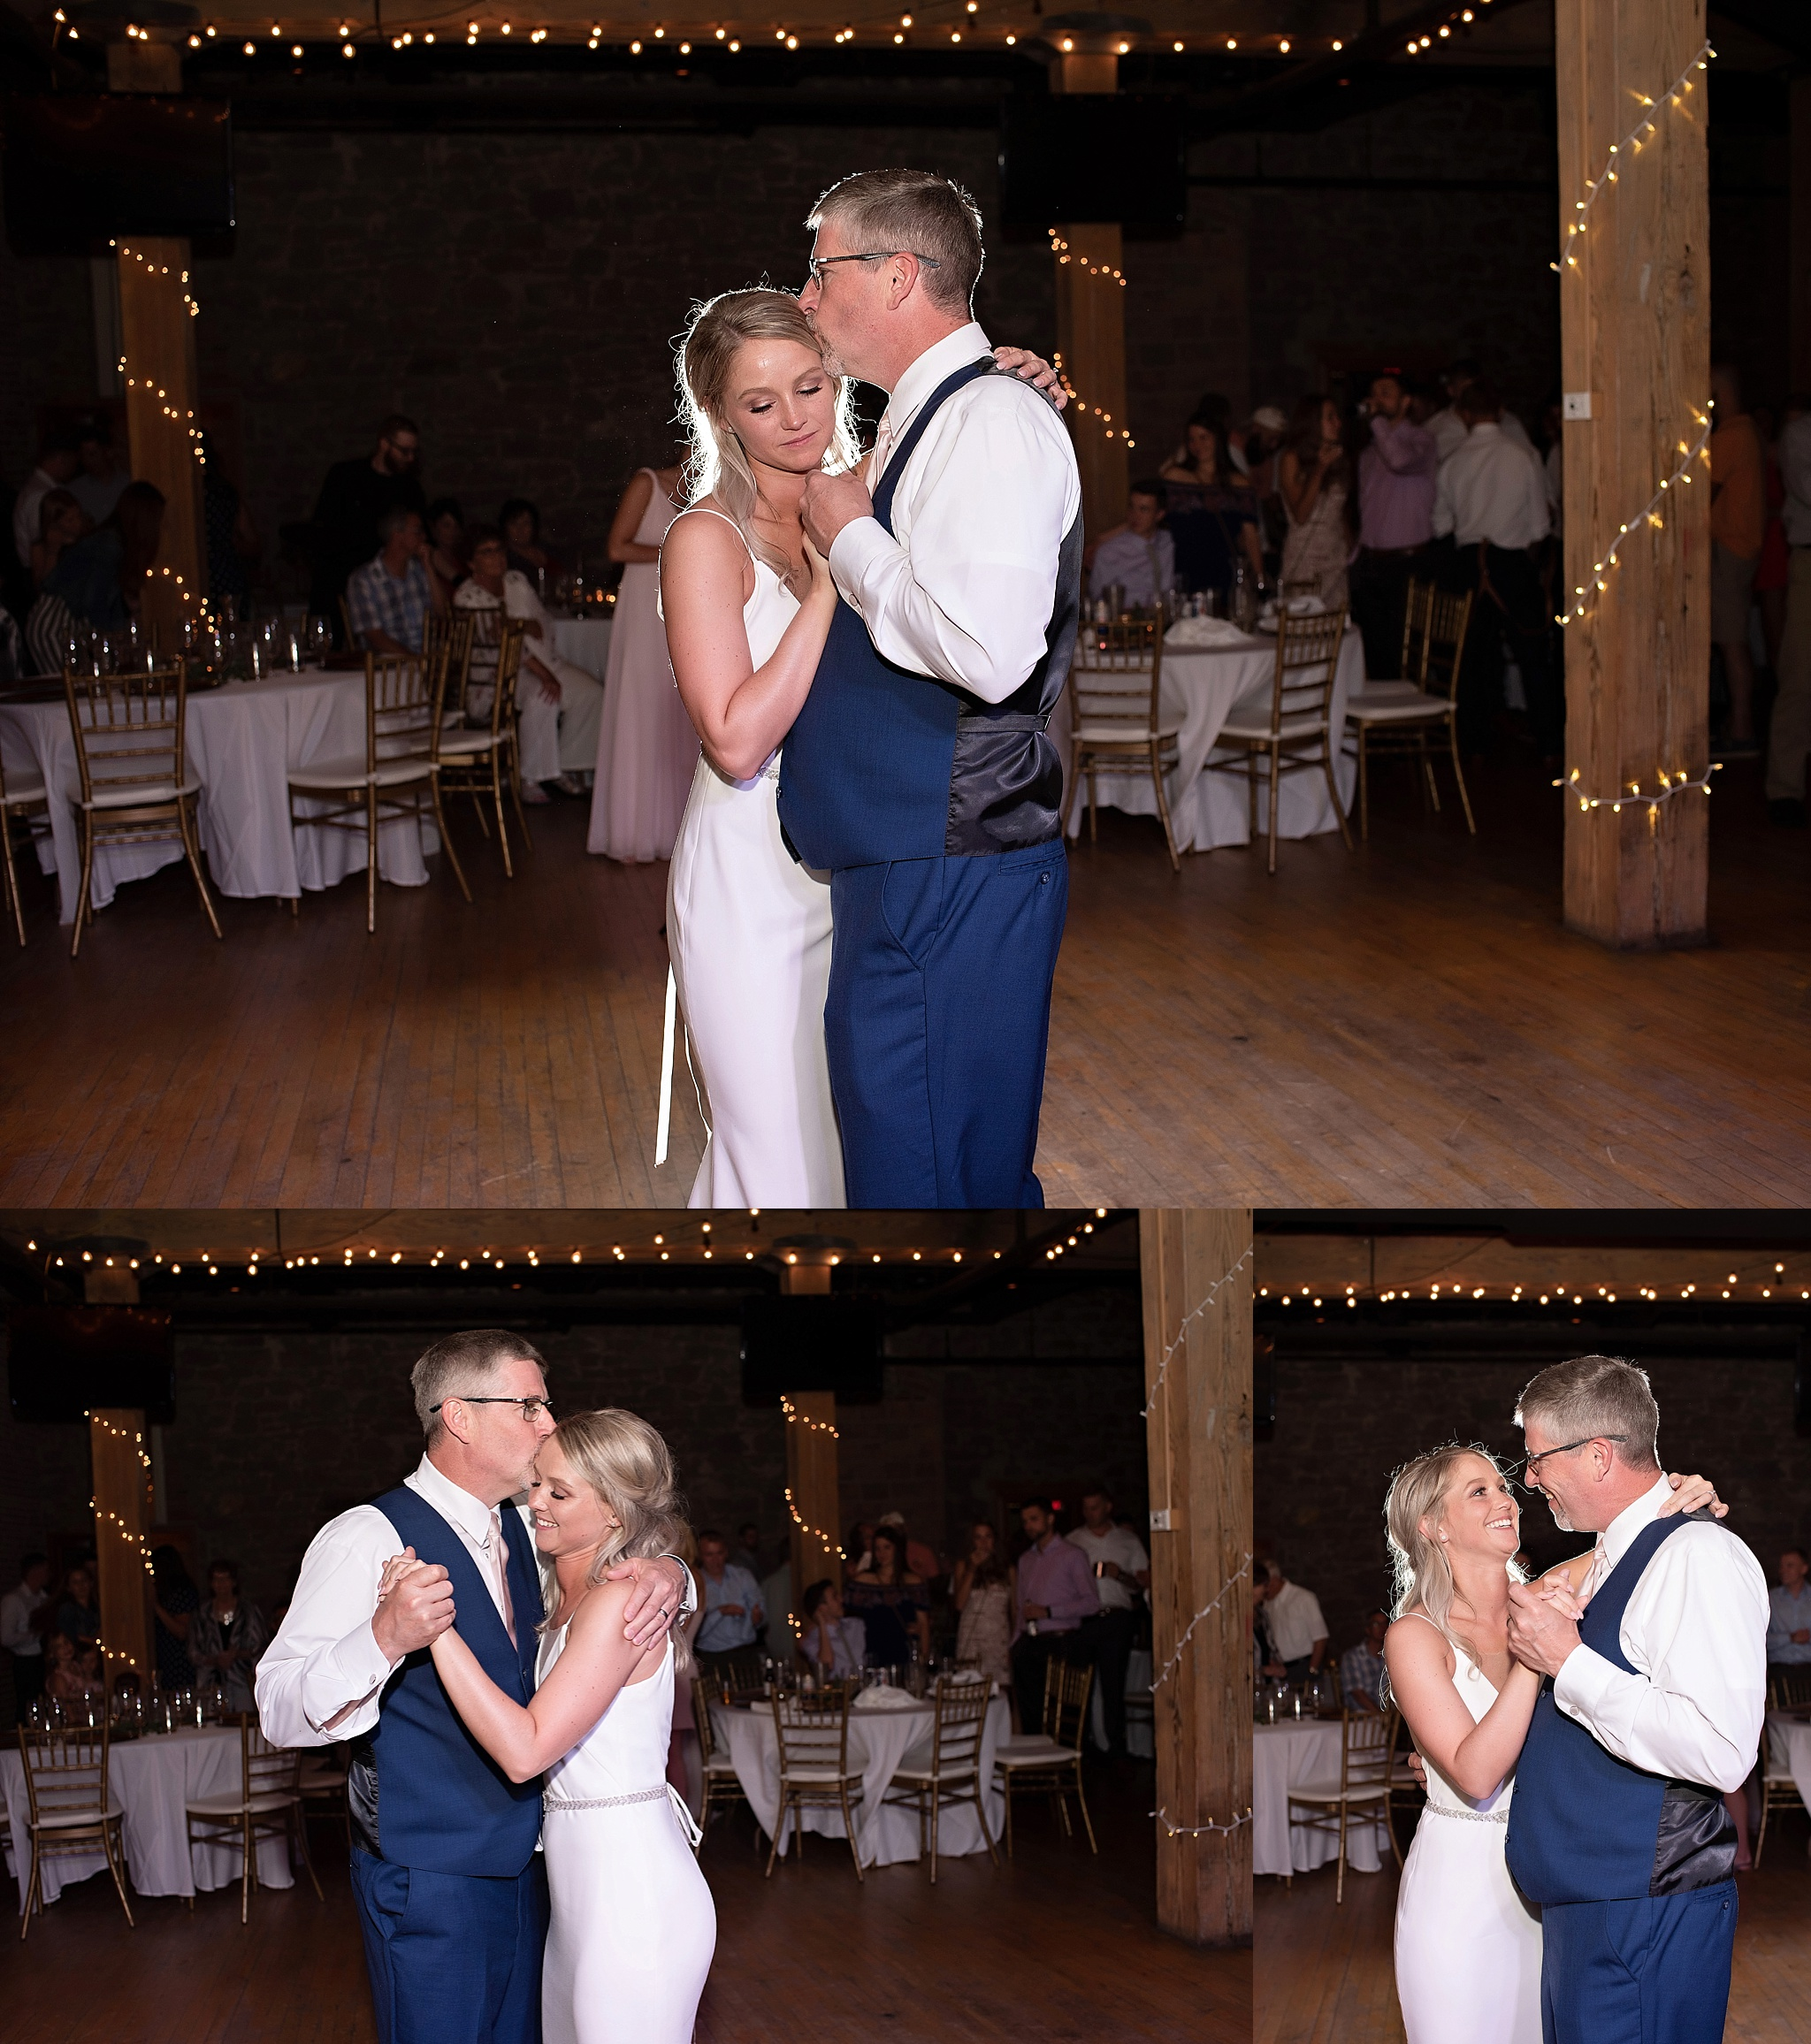 bride and groom first dance icon events center downtown sioux falls south dakota